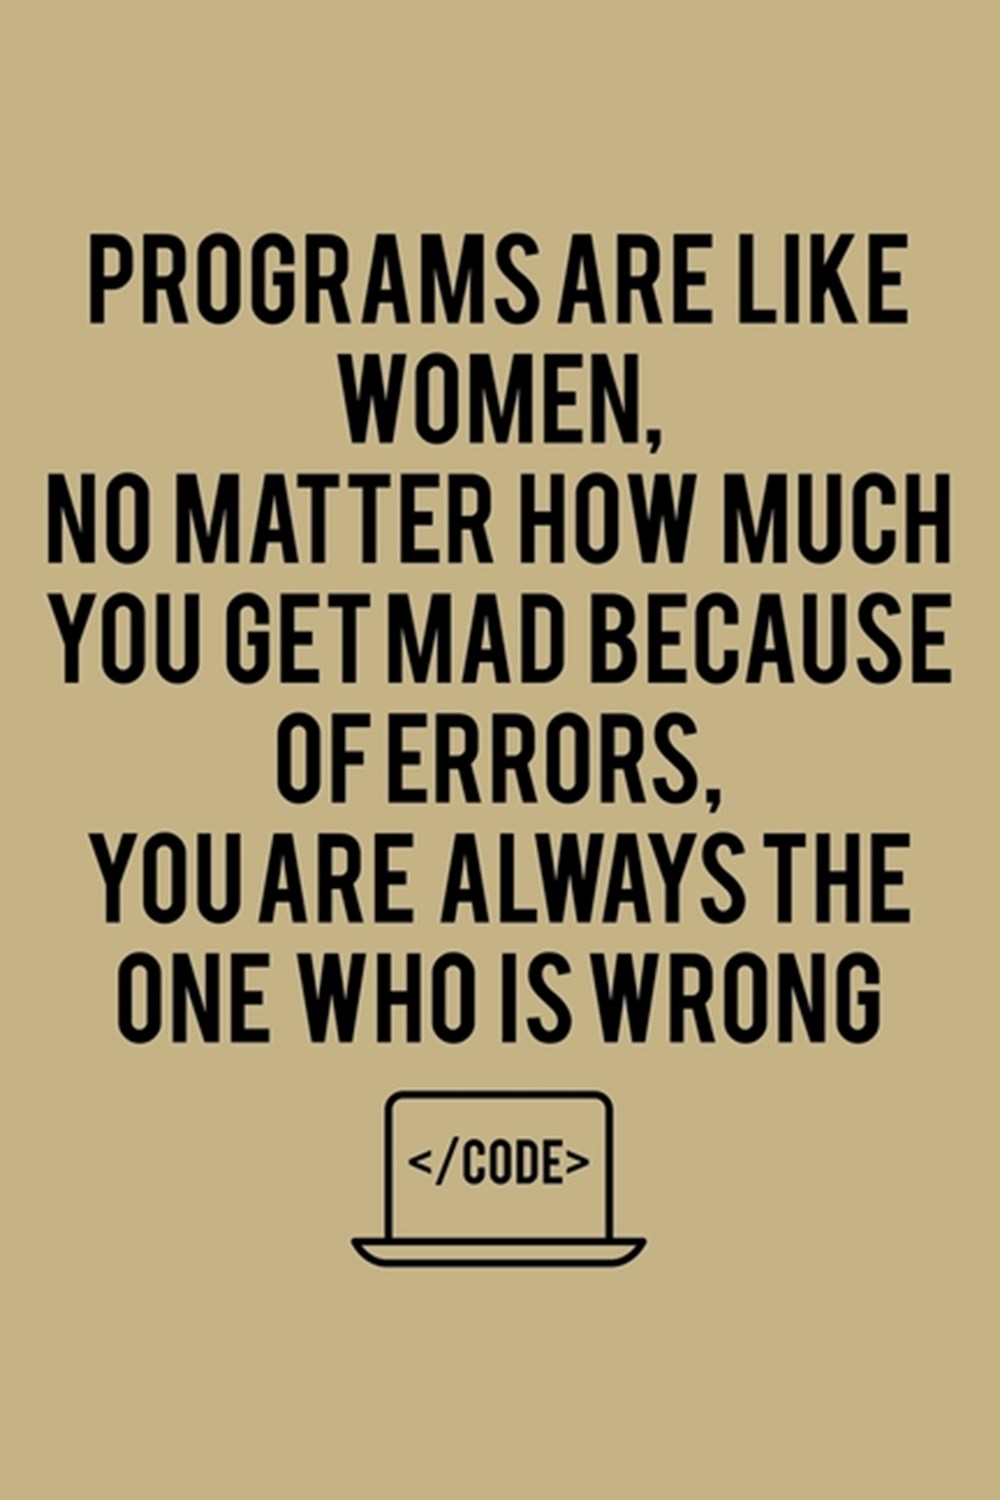 Programs Are Like Women, No Matter How Much You Get Mad Because Of Errors, You Are Always The One Wh